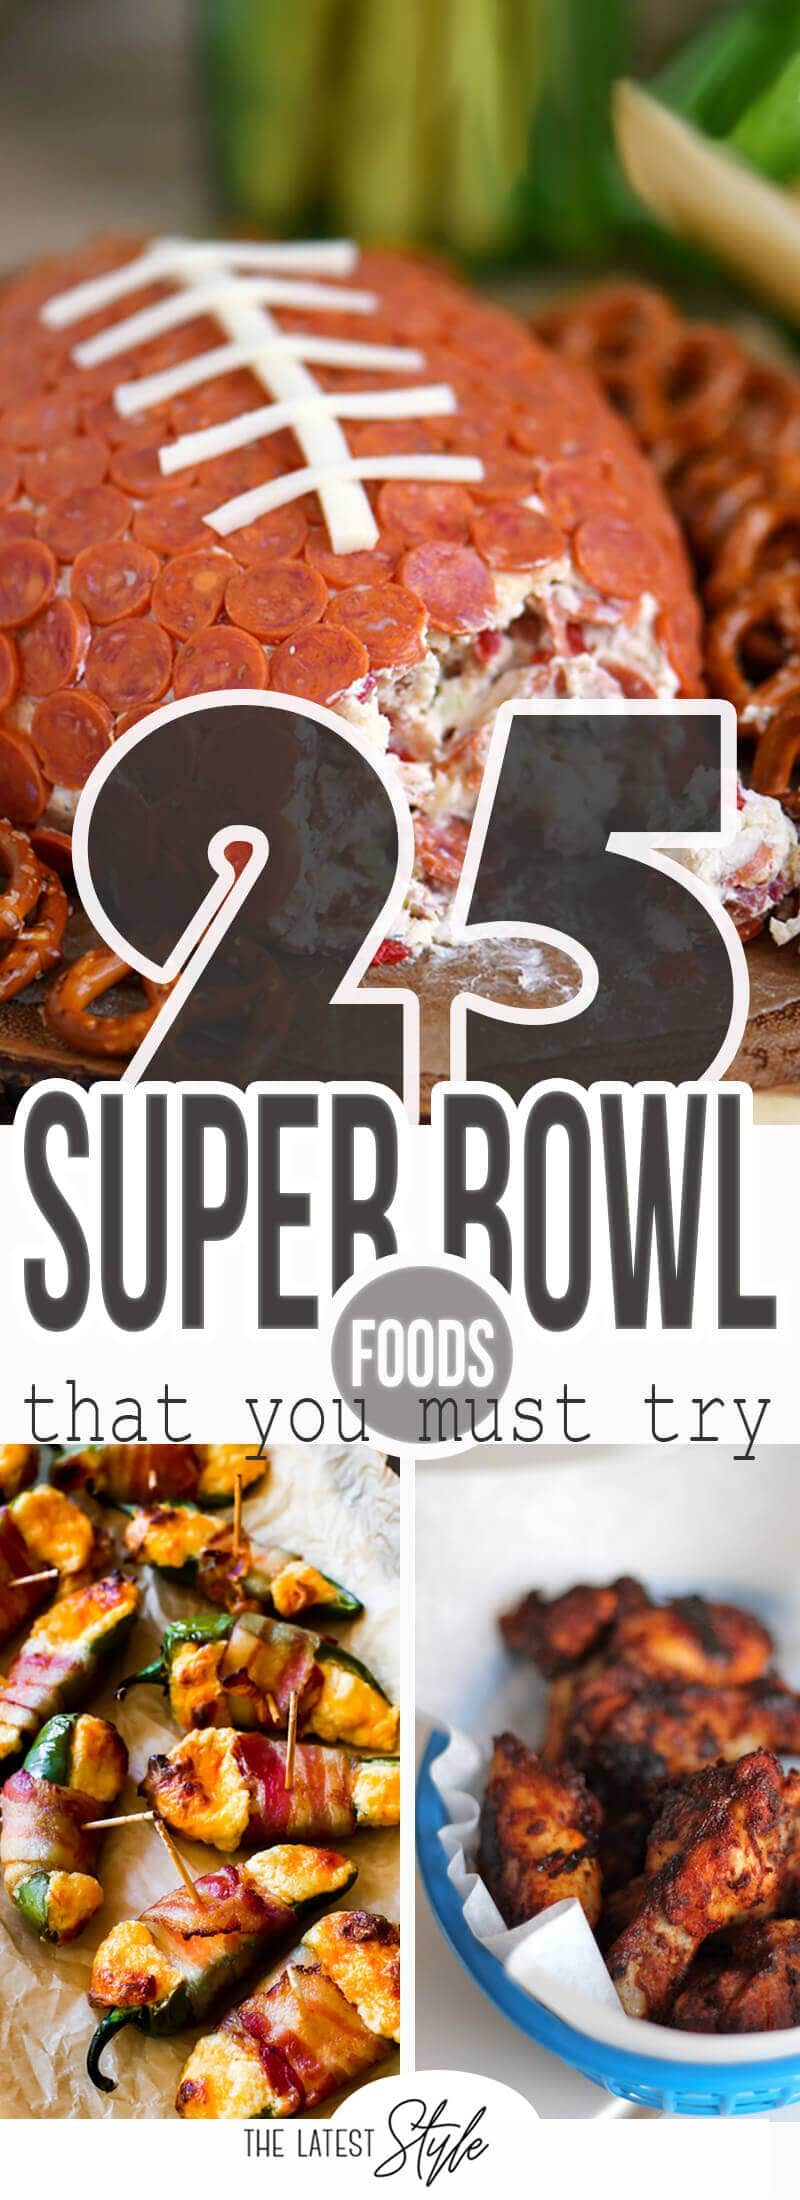 25 Legendary Super Bowl Recipes that Every Football Fan Must Try